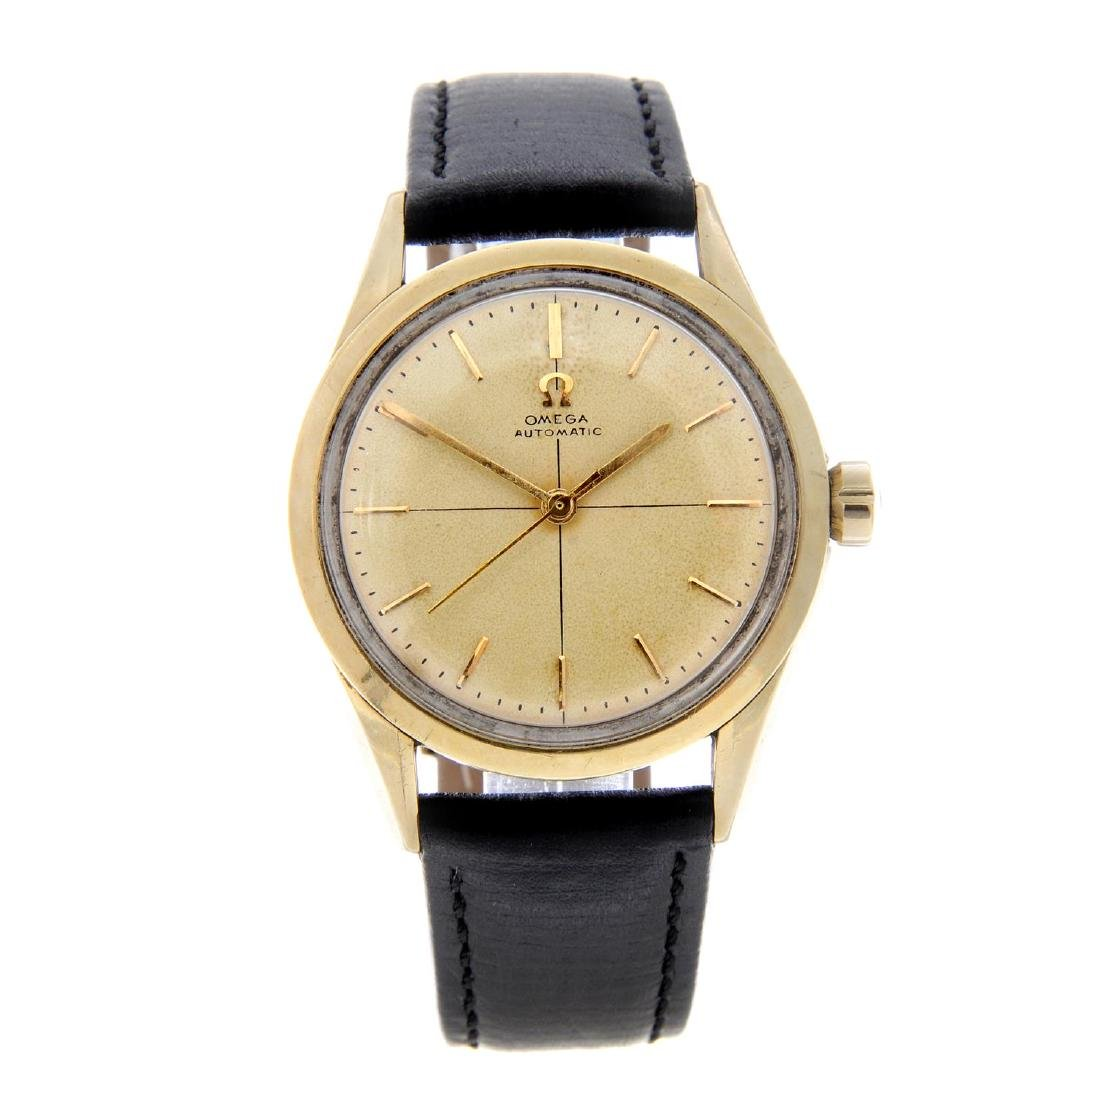 OMEGA - a gentleman's wrist watch. Gold capped case